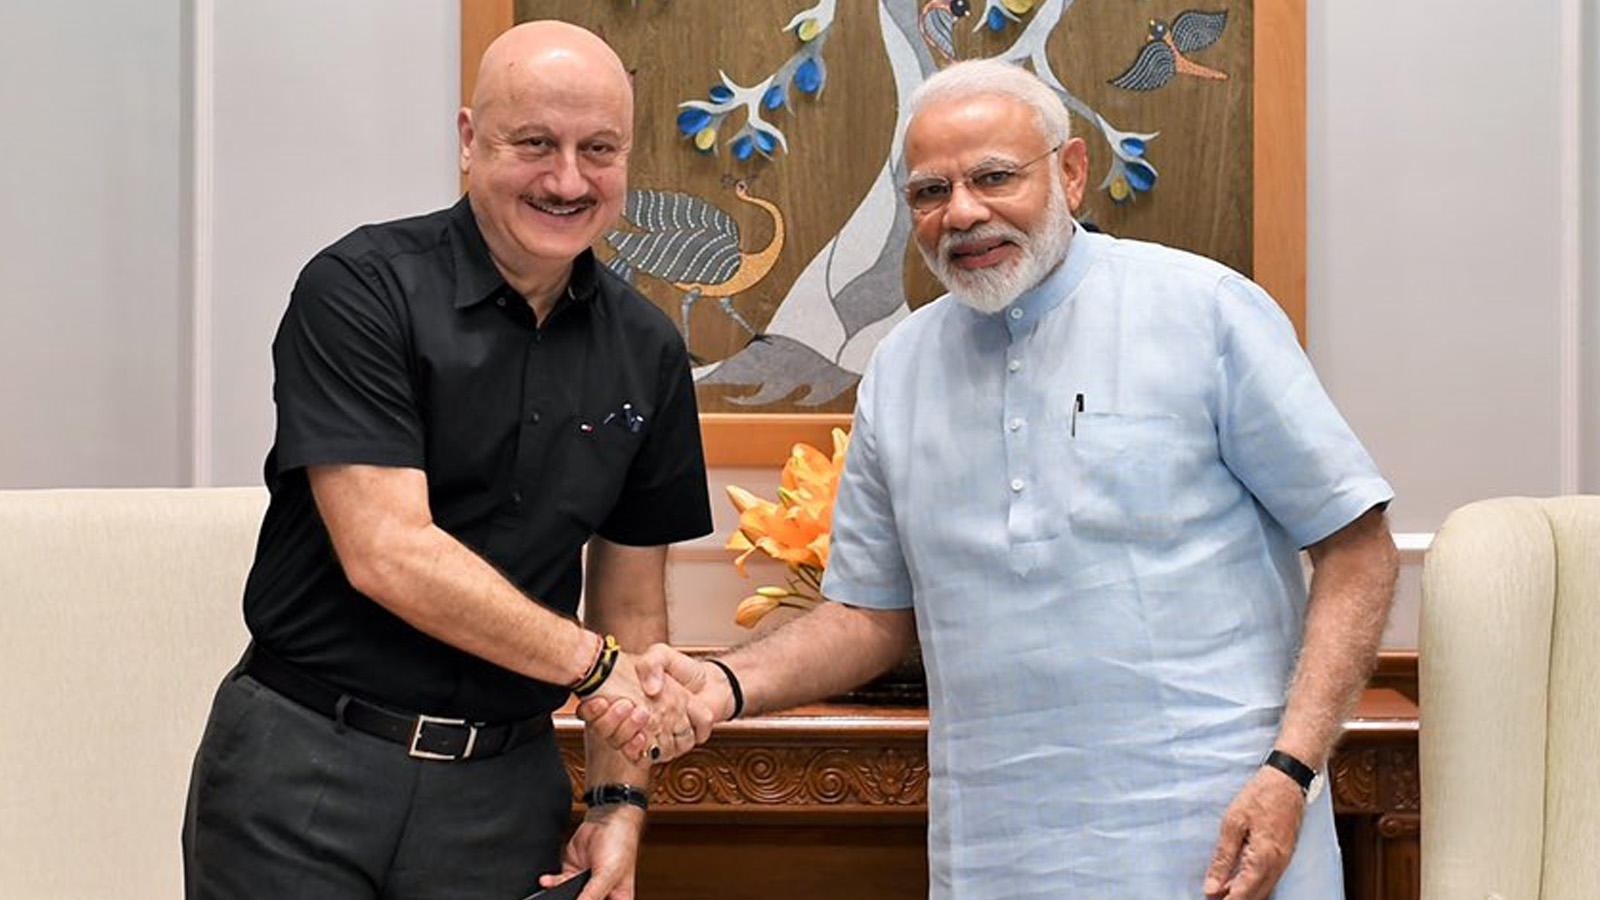 Anupam Kher meets PM Narendra Modi, calls it 'an honour and a privilege' |  Hindi Movie News - Bollywood - Times of India